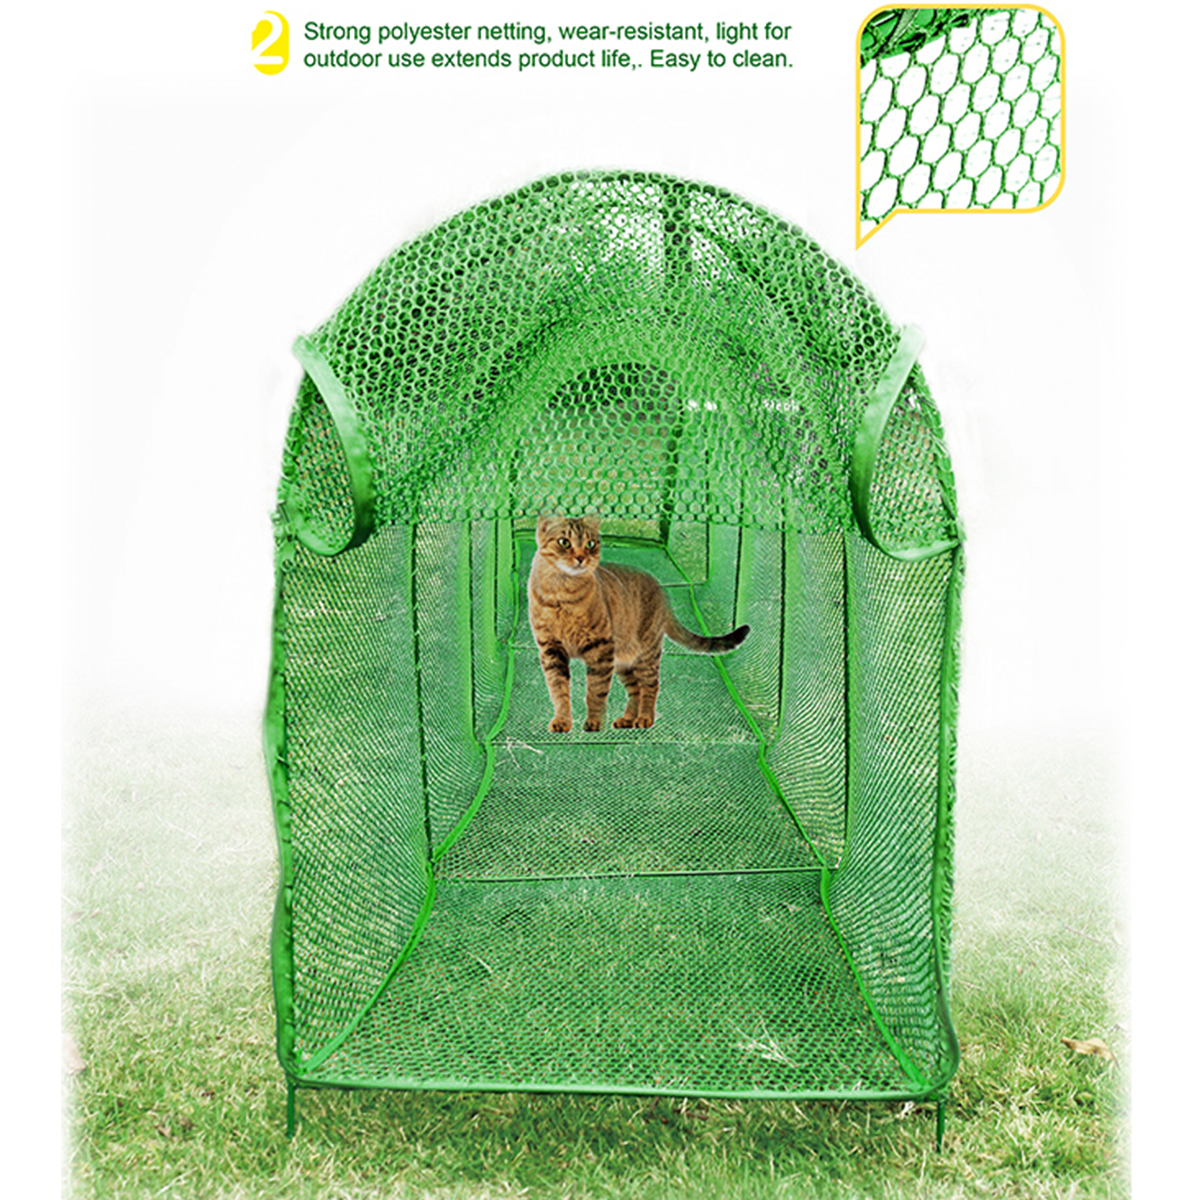 Deluxe Outdoor Foldable Pet Cat Walk Run Training Tunnel Easy Set Up Net Fence Outdoor Bag